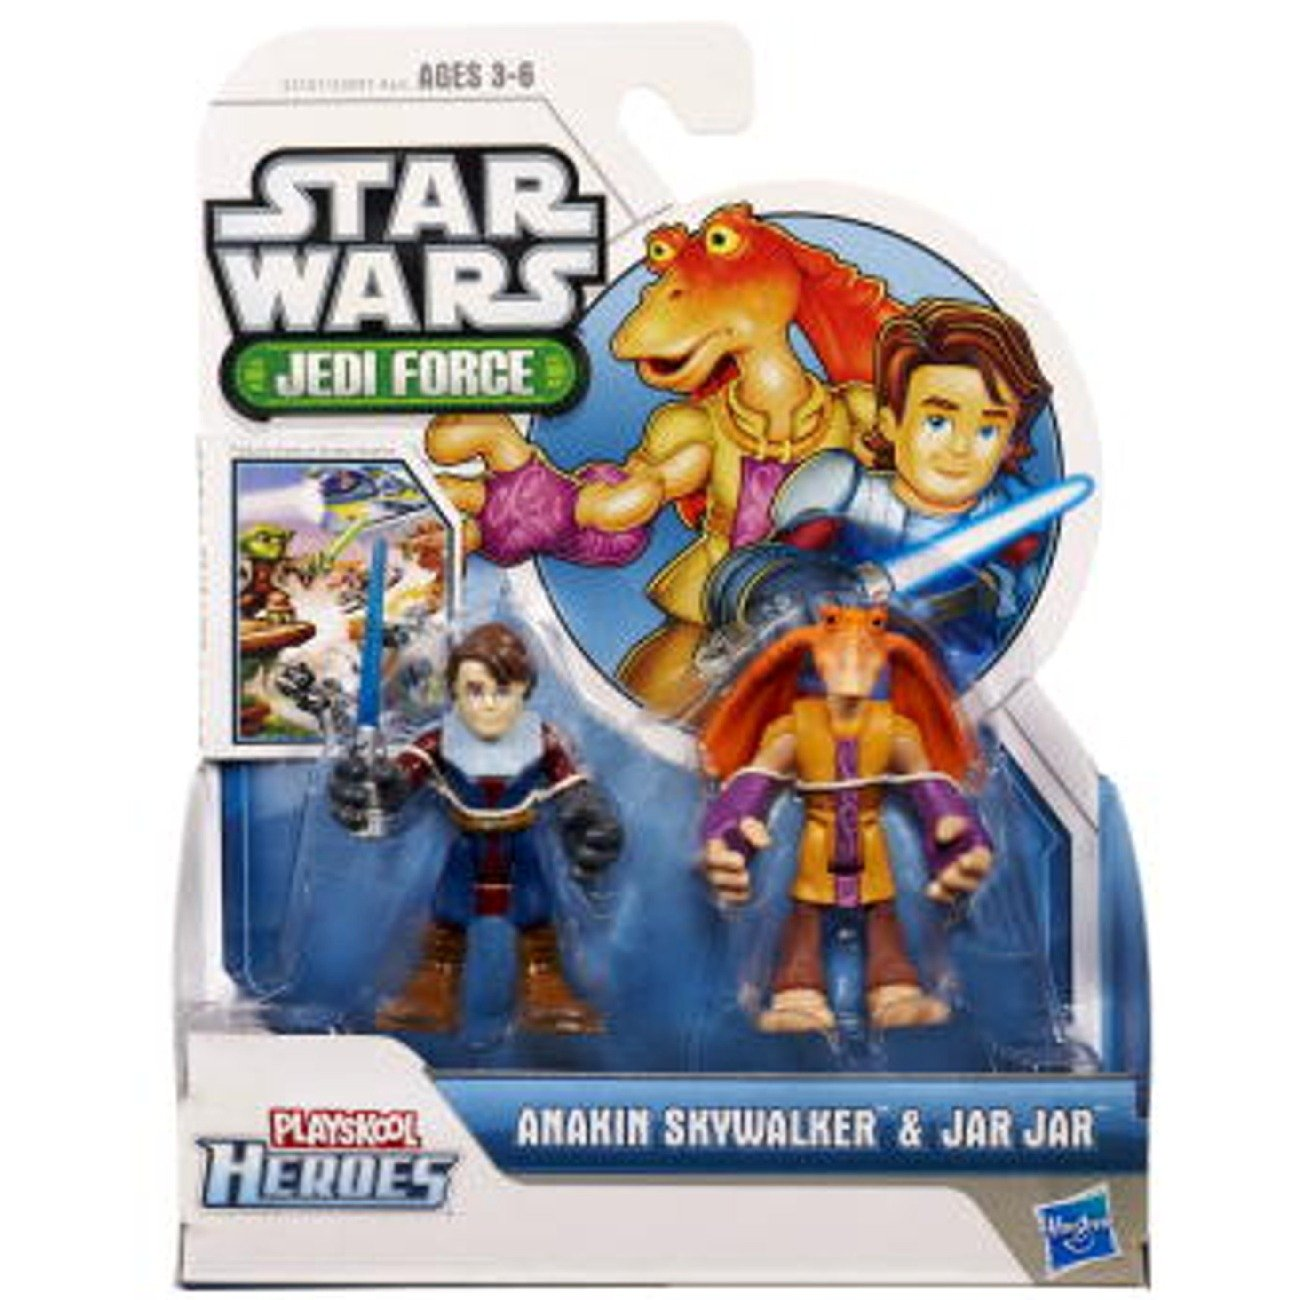 Playskool Heroes Star Wars Jedi Force 2-Pack - Anakin and Jar Jar- aus den USA